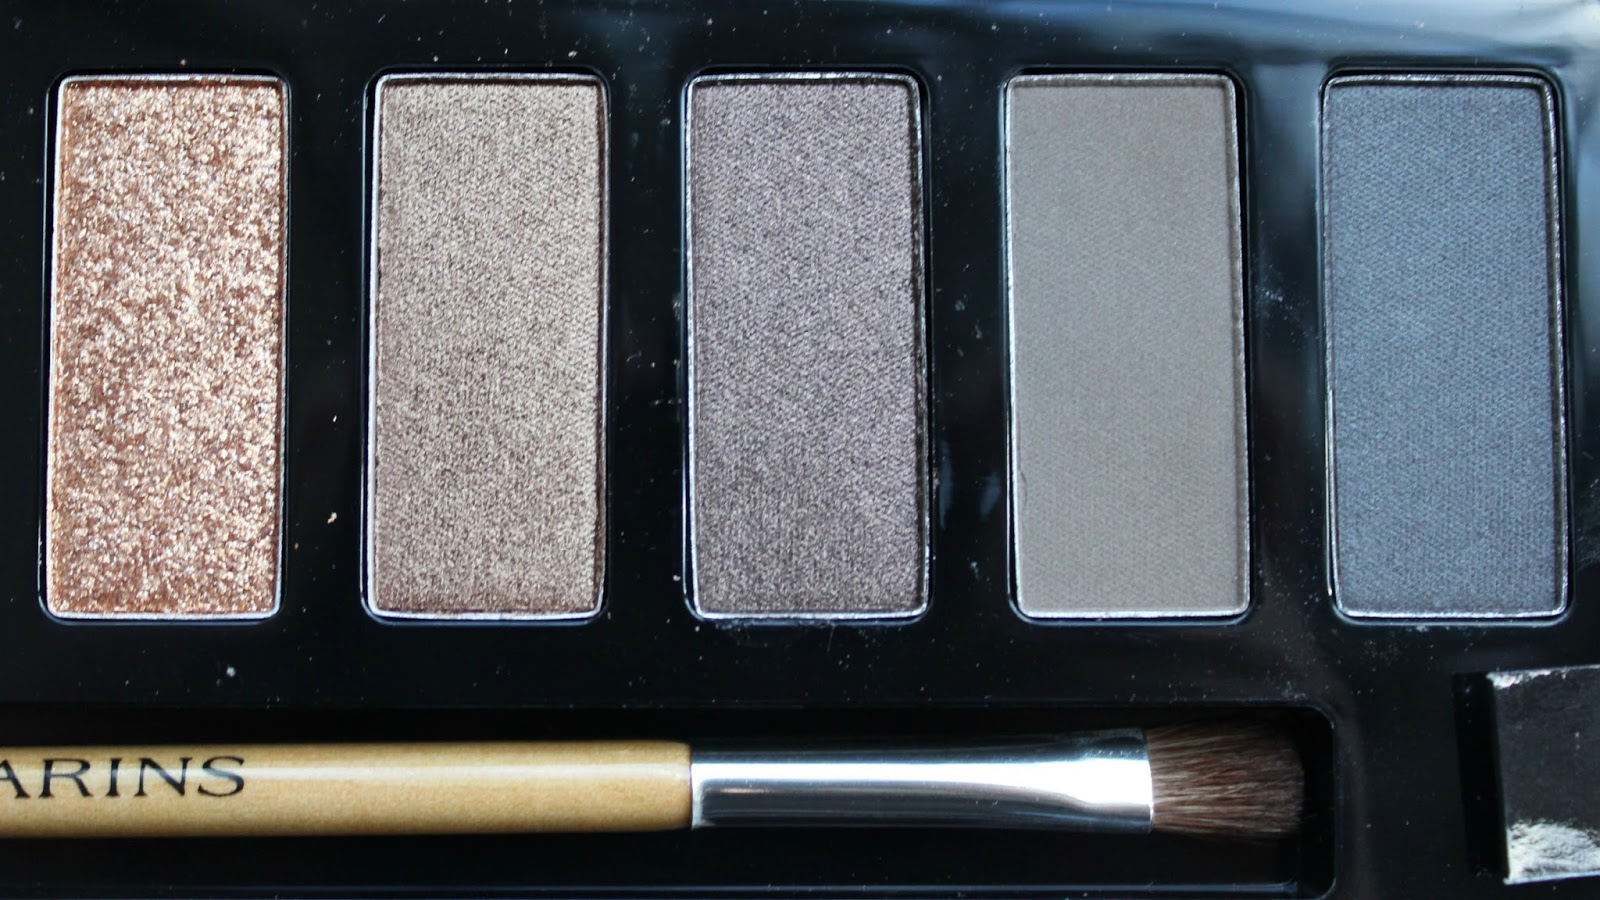 A picture of the Clarins The Essentials Eye Make-up Palette